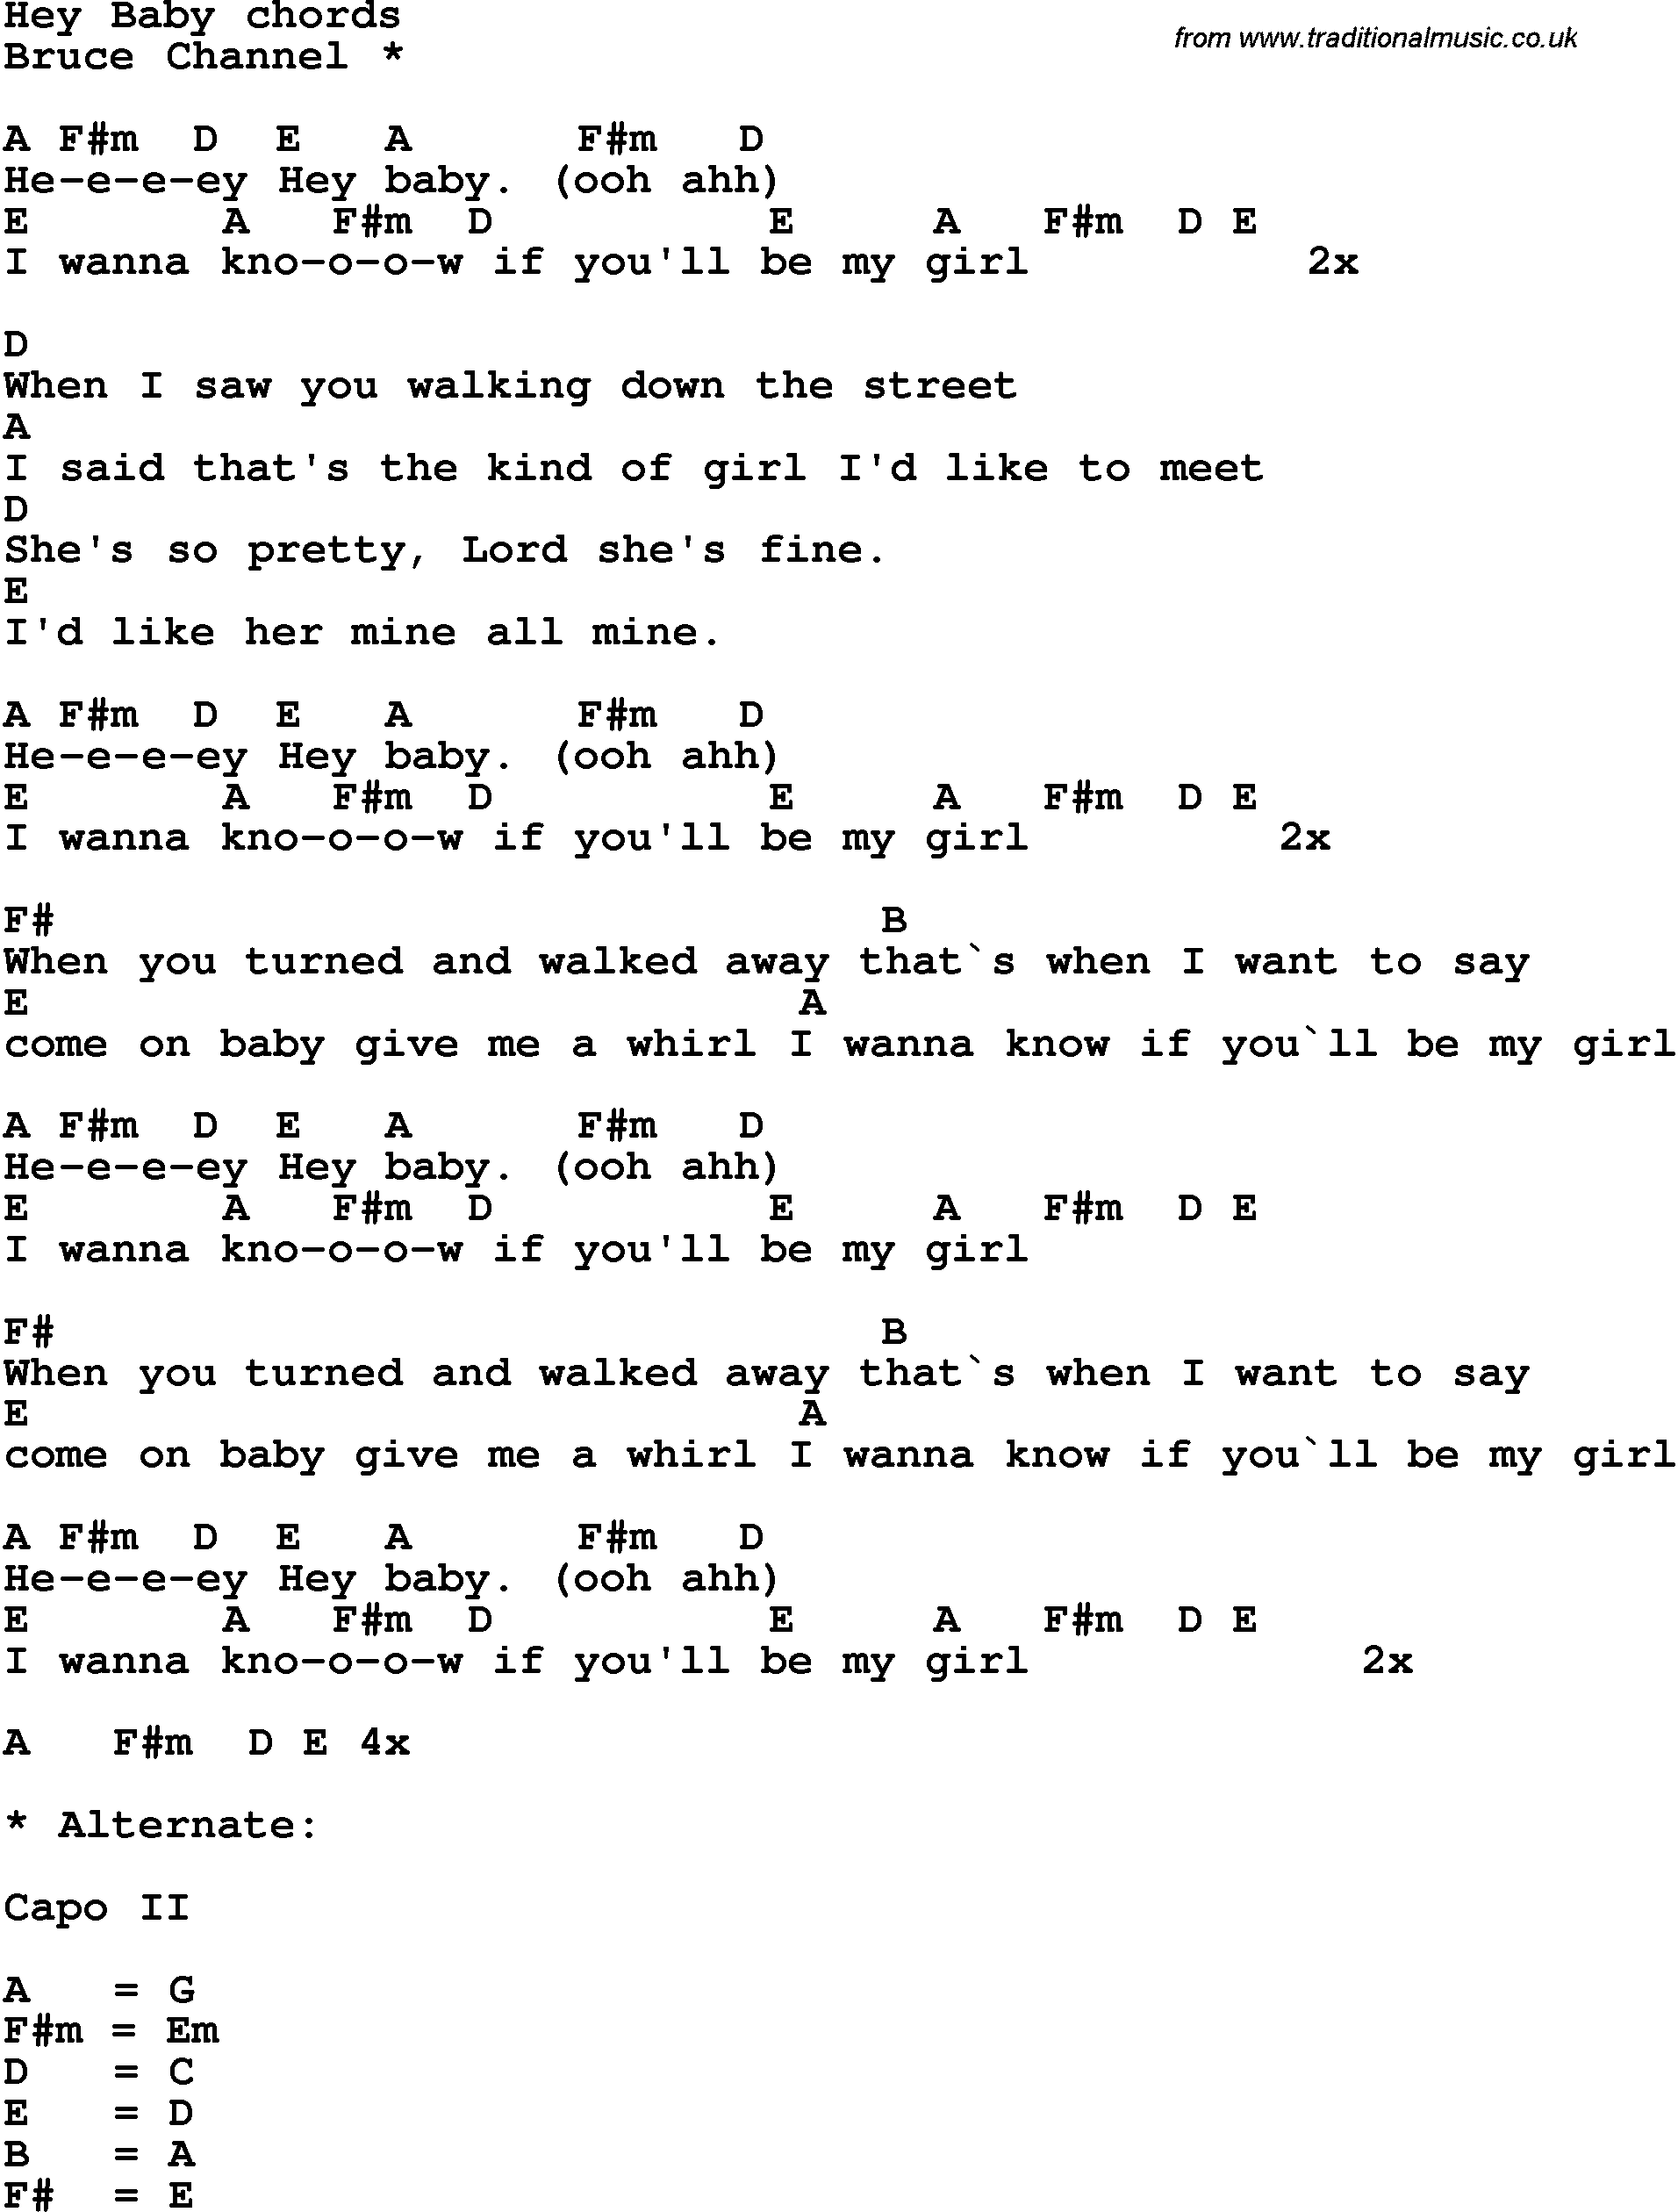 Song Lyrics With Guitar Chords For Hey Baby